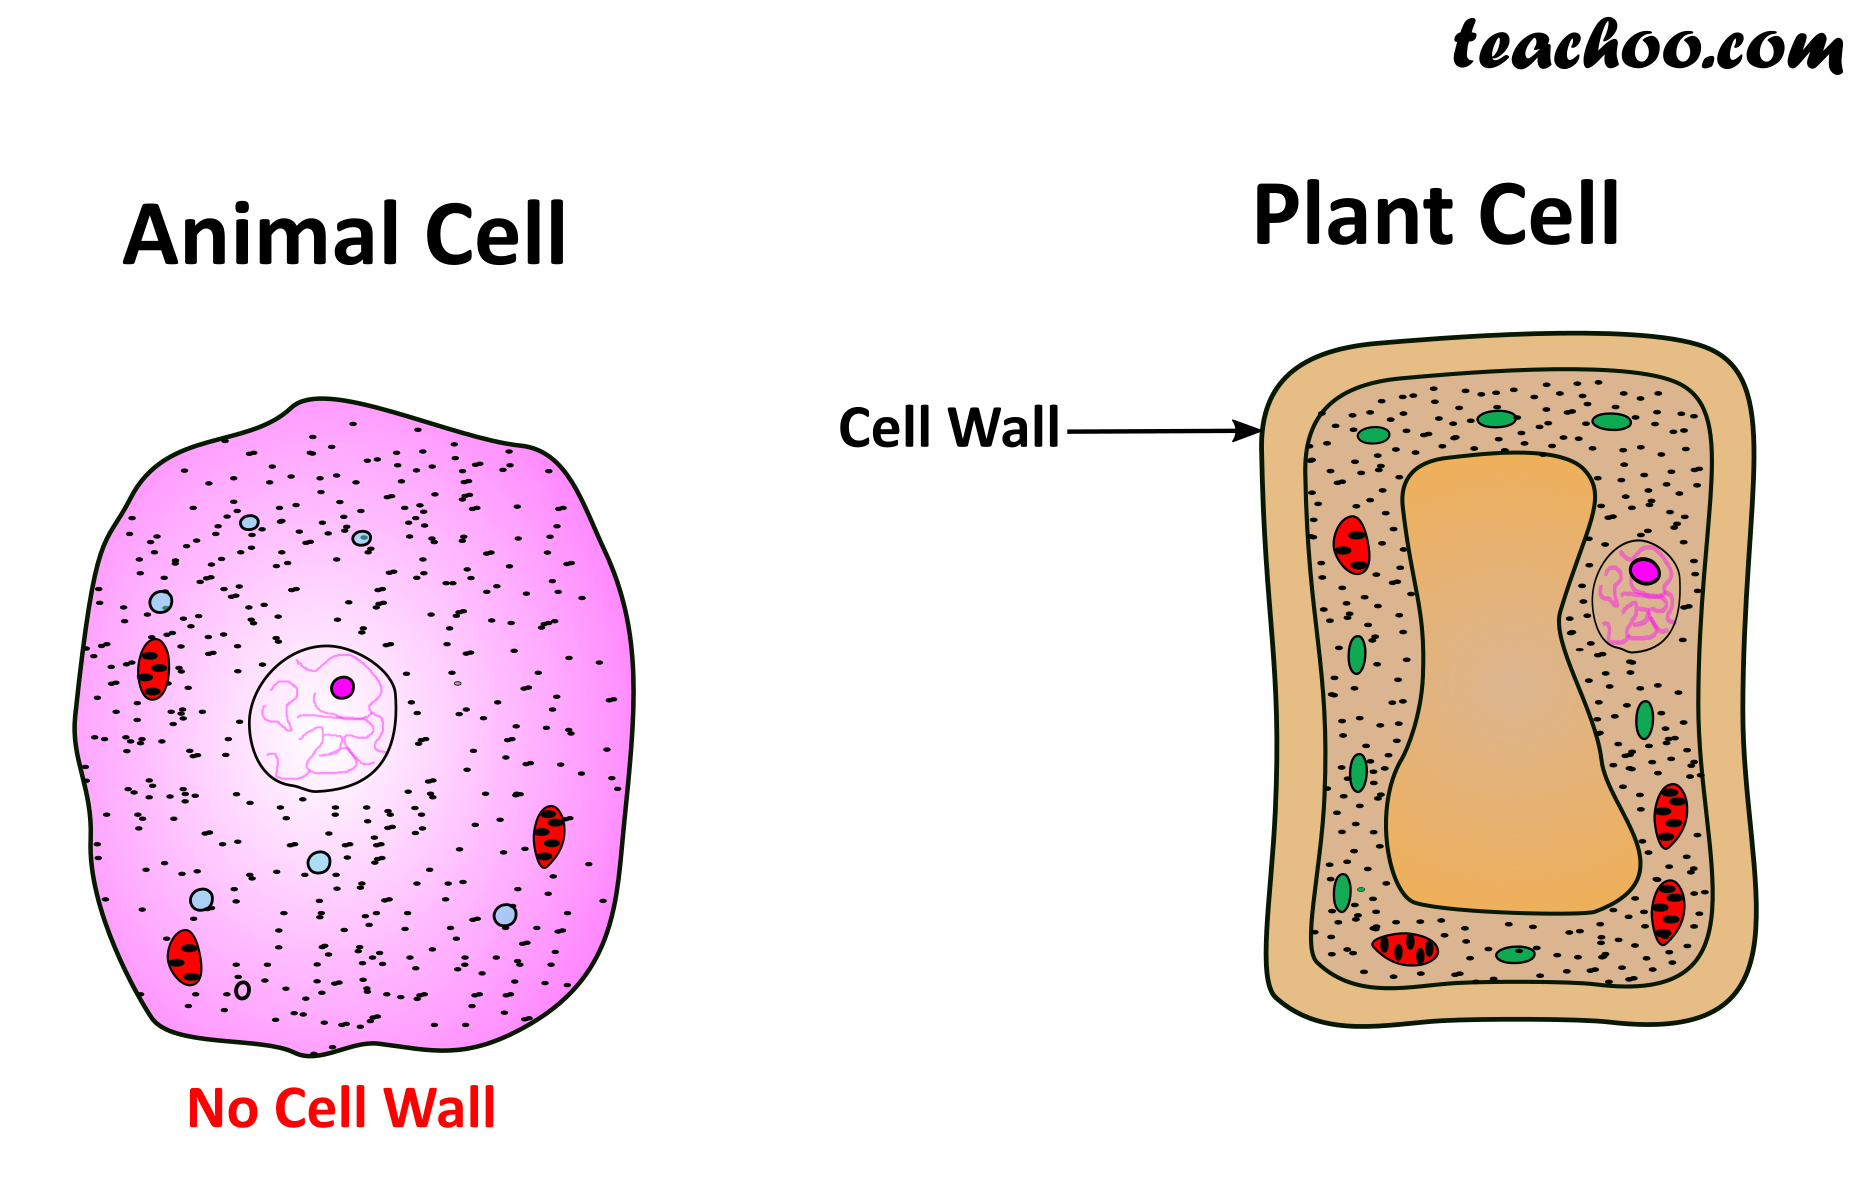 Animal Cell Diagram For Class 8 Cbse ~ DIAGRAM